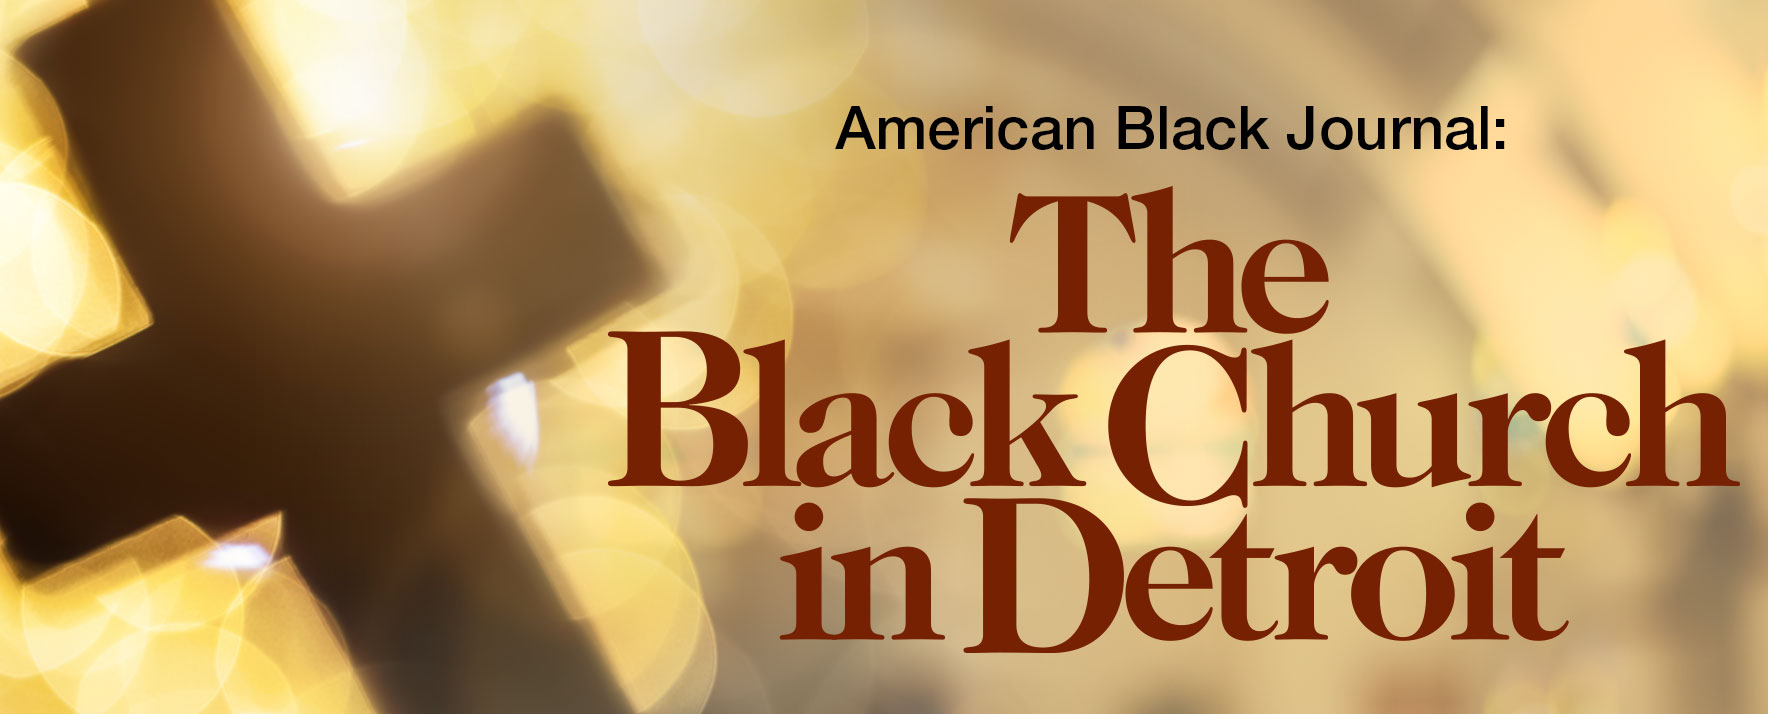 American Black Journal Black Church in Detroit logo